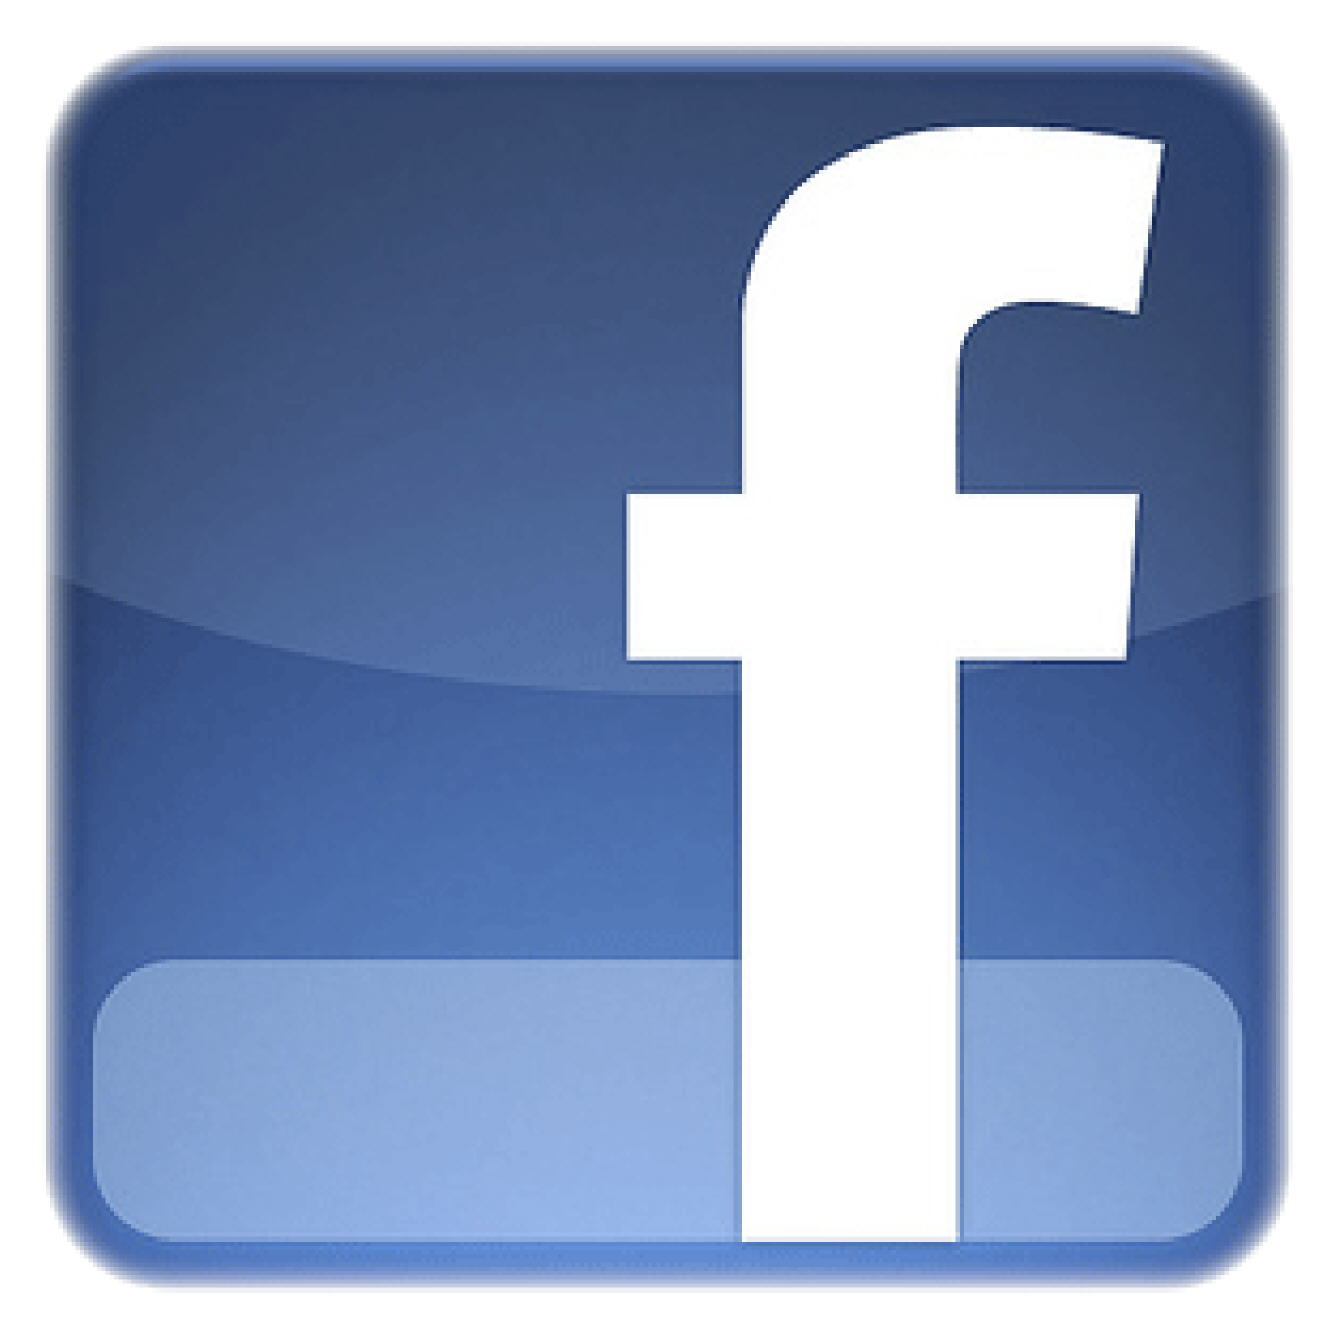 The New Facebook & the Upcoming Facebook App Store